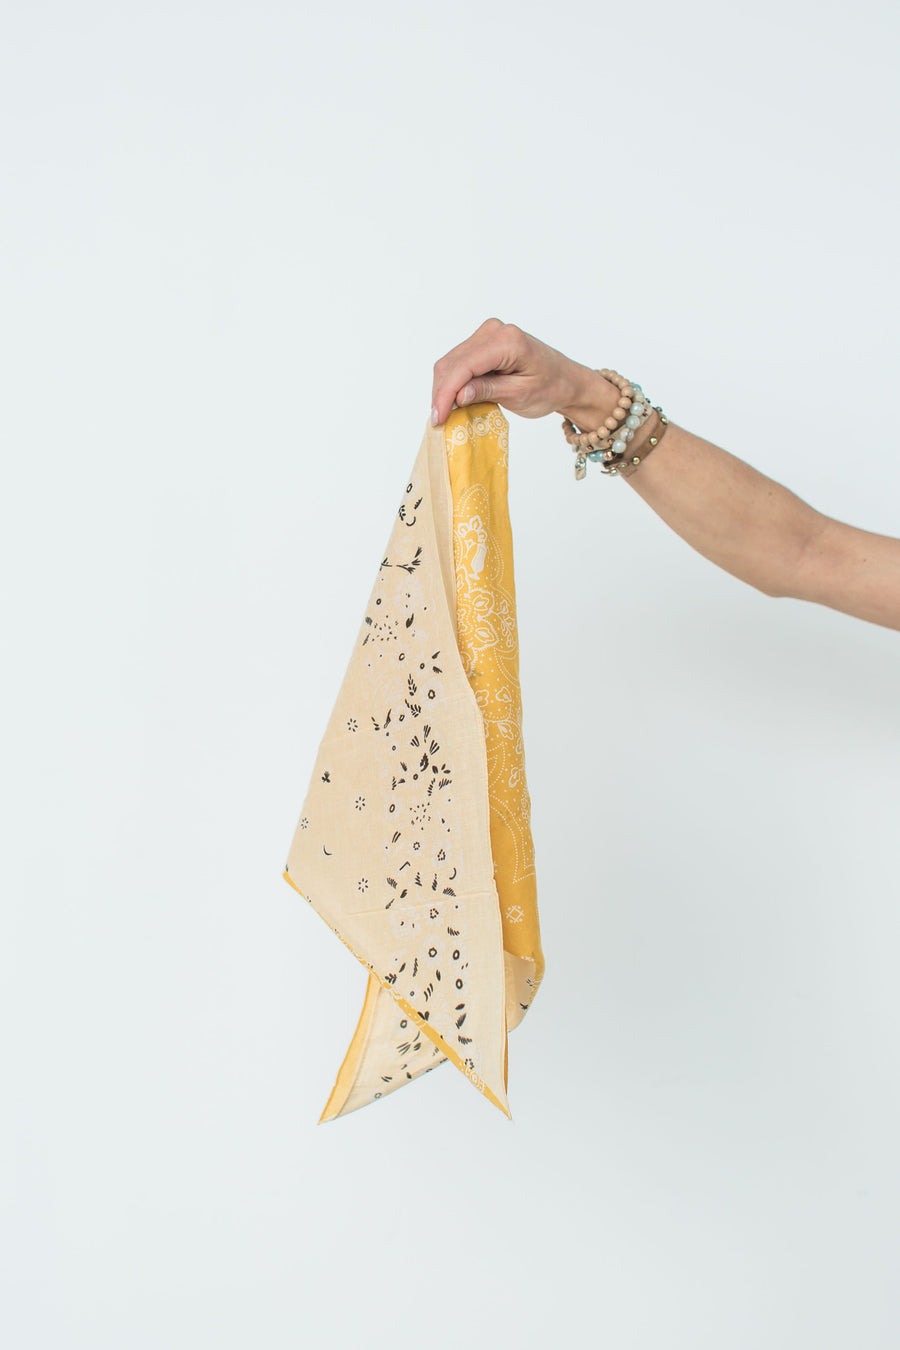 Two-Tone Floral Handkerchief - Mustard & Yellow